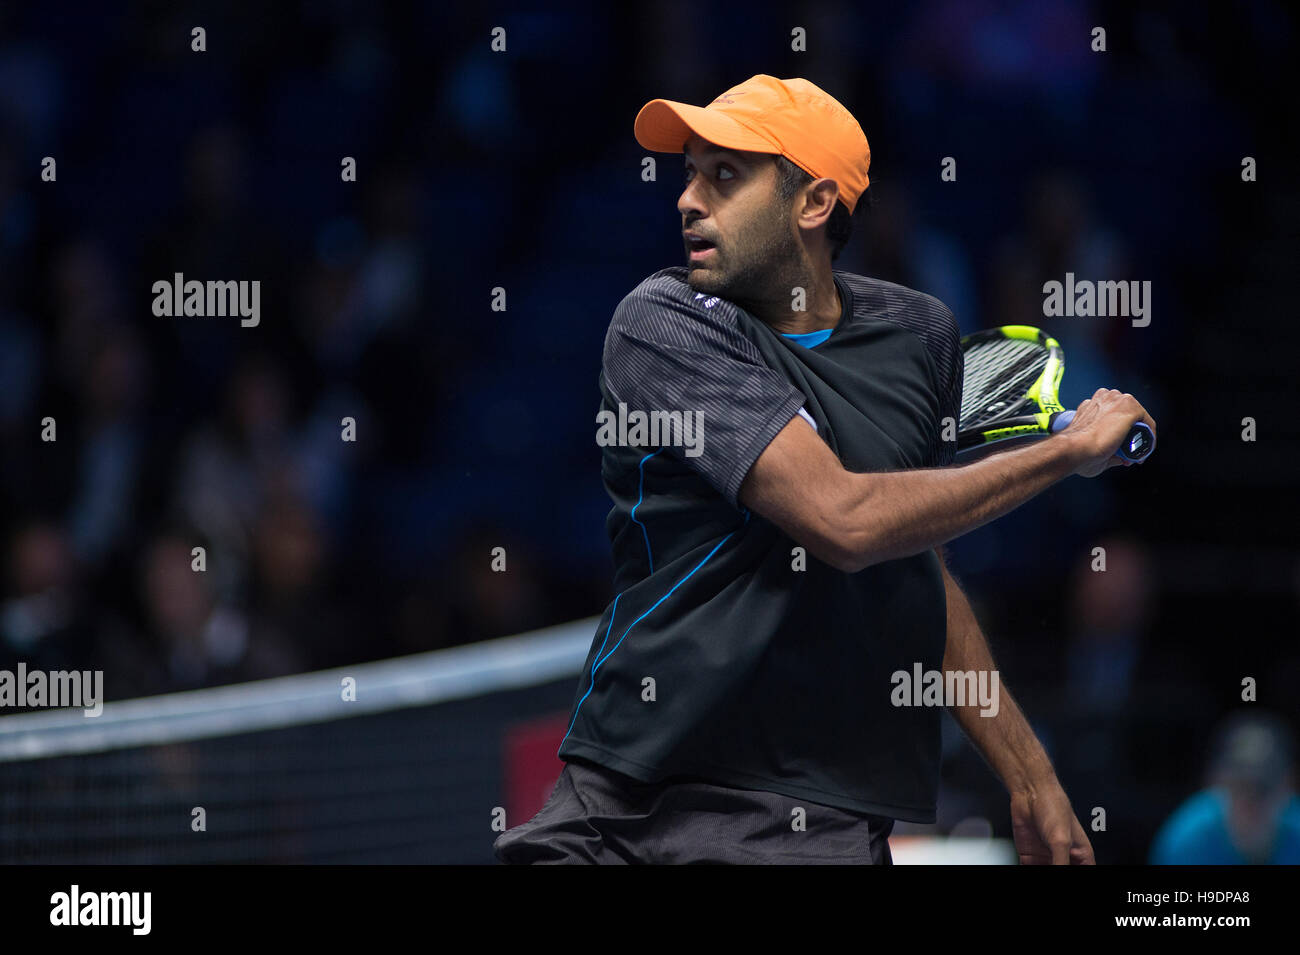 The O2, London, UK. 20th November, 2016. Finals doubles match, Rajeev Ram backhand at the net. © sportsimages. - Stock Image